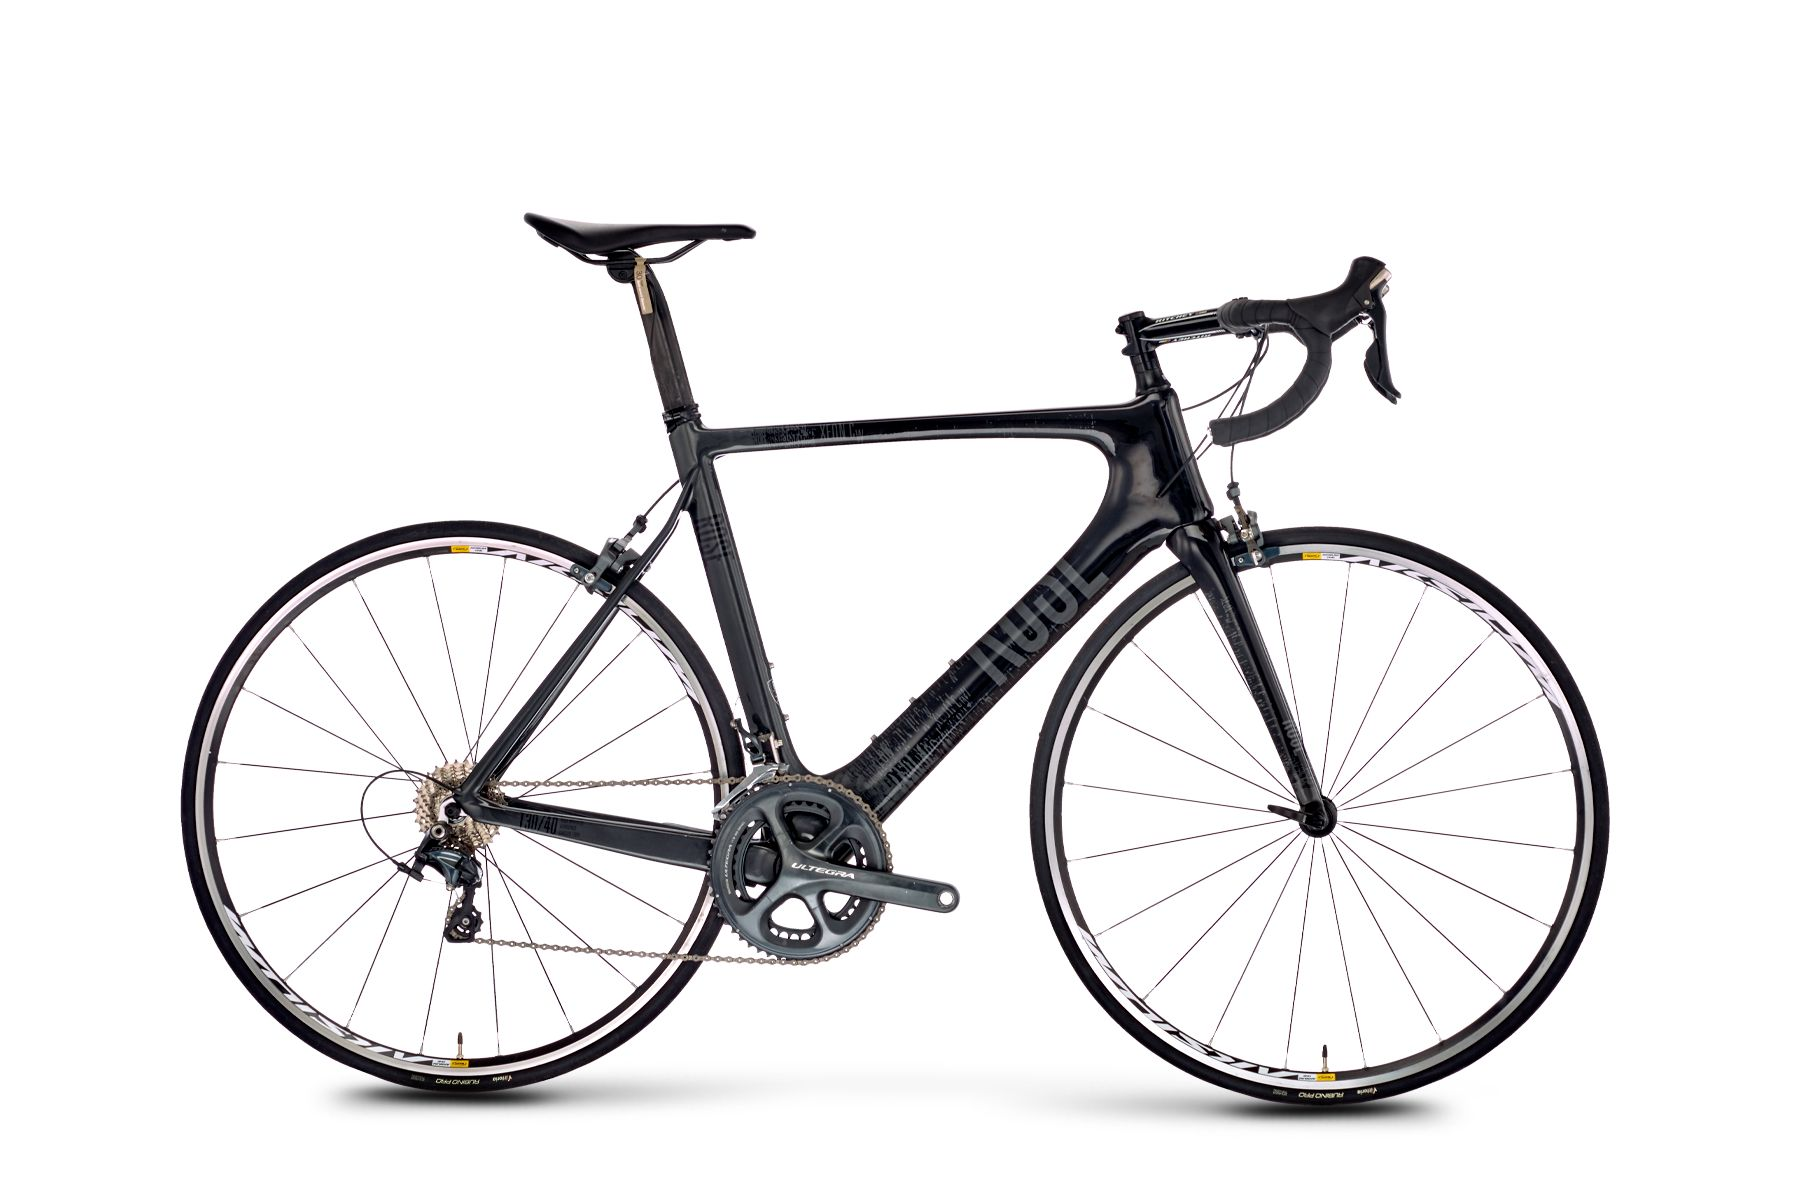 ROSE Xeon CW 14 Ultegra Second-Hand Bike | item_misc